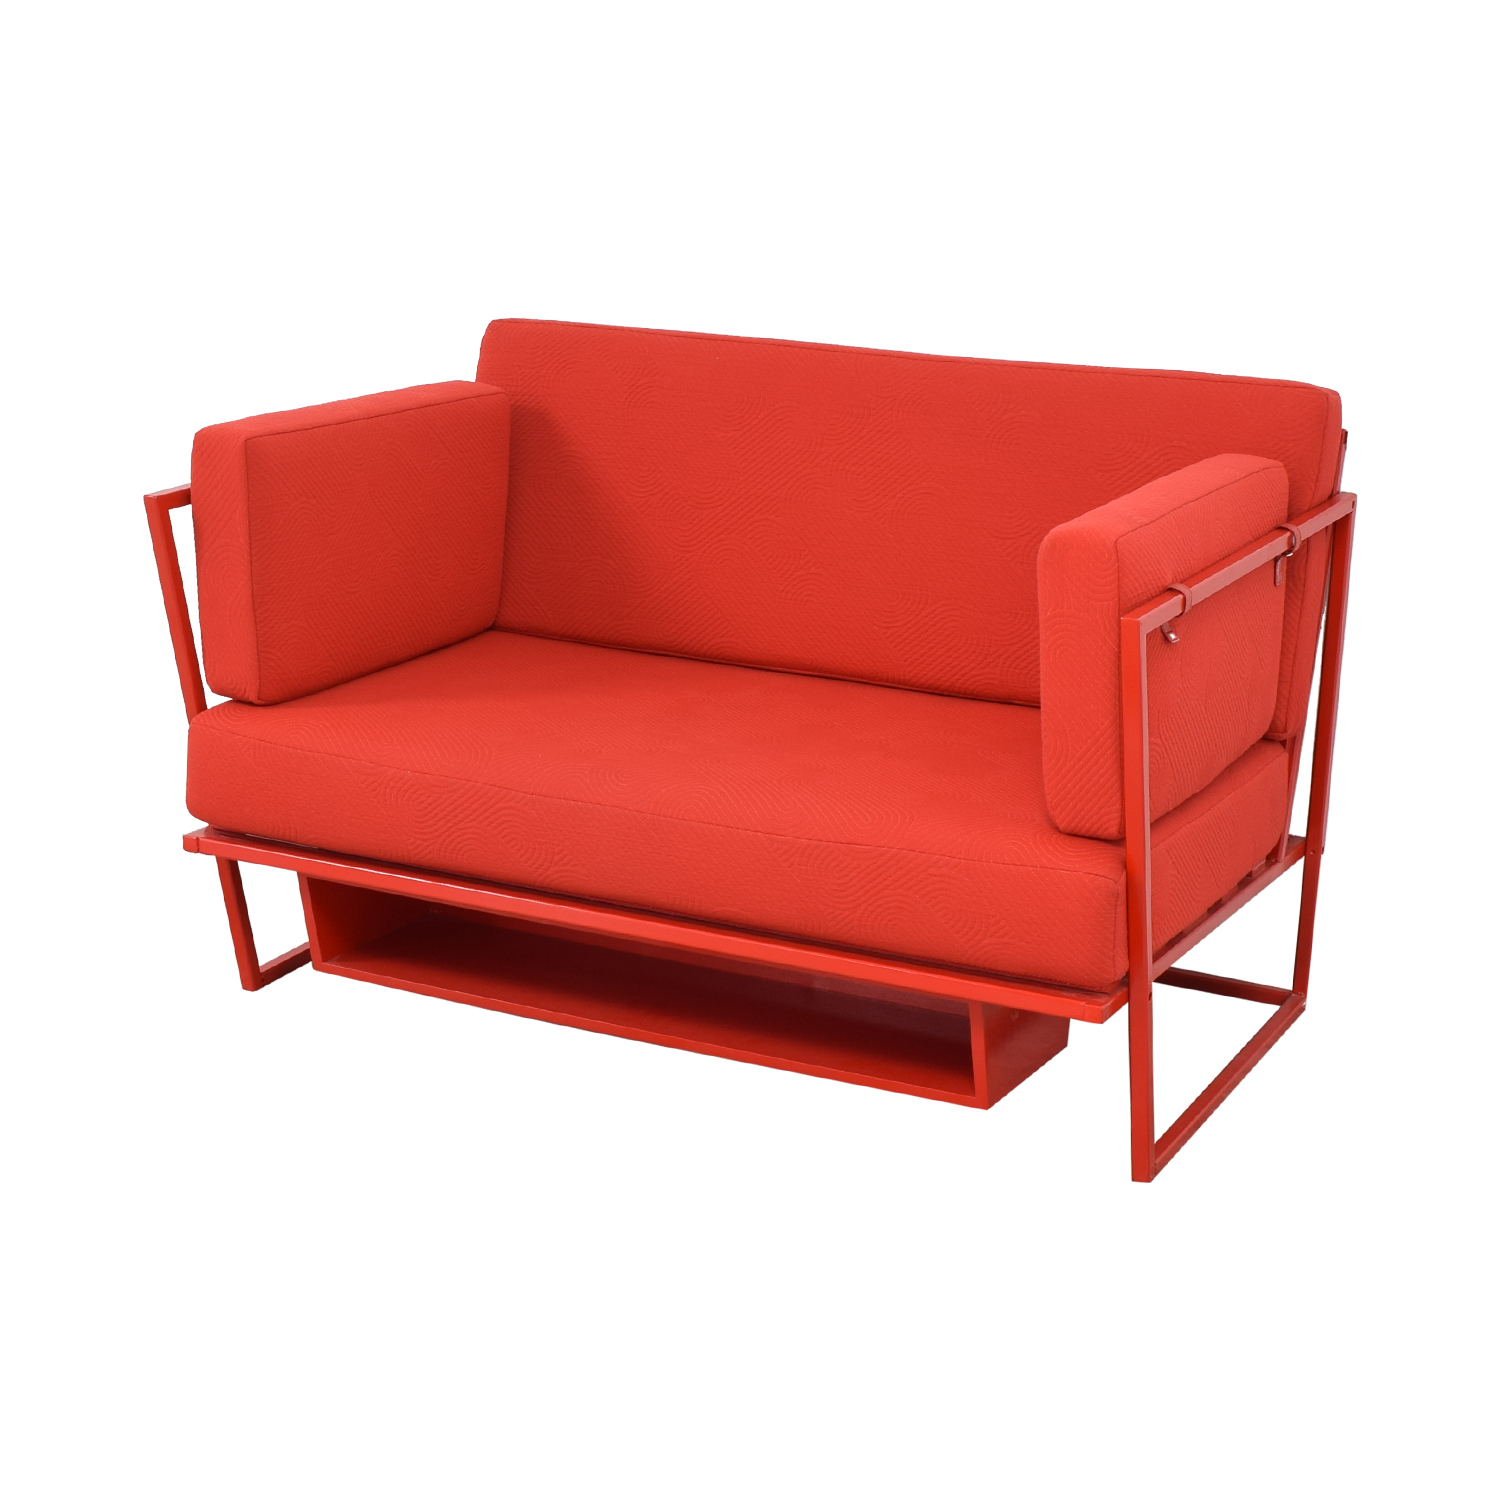 buy Collector NYC Custom Red Sofa Collector NYC Sofas